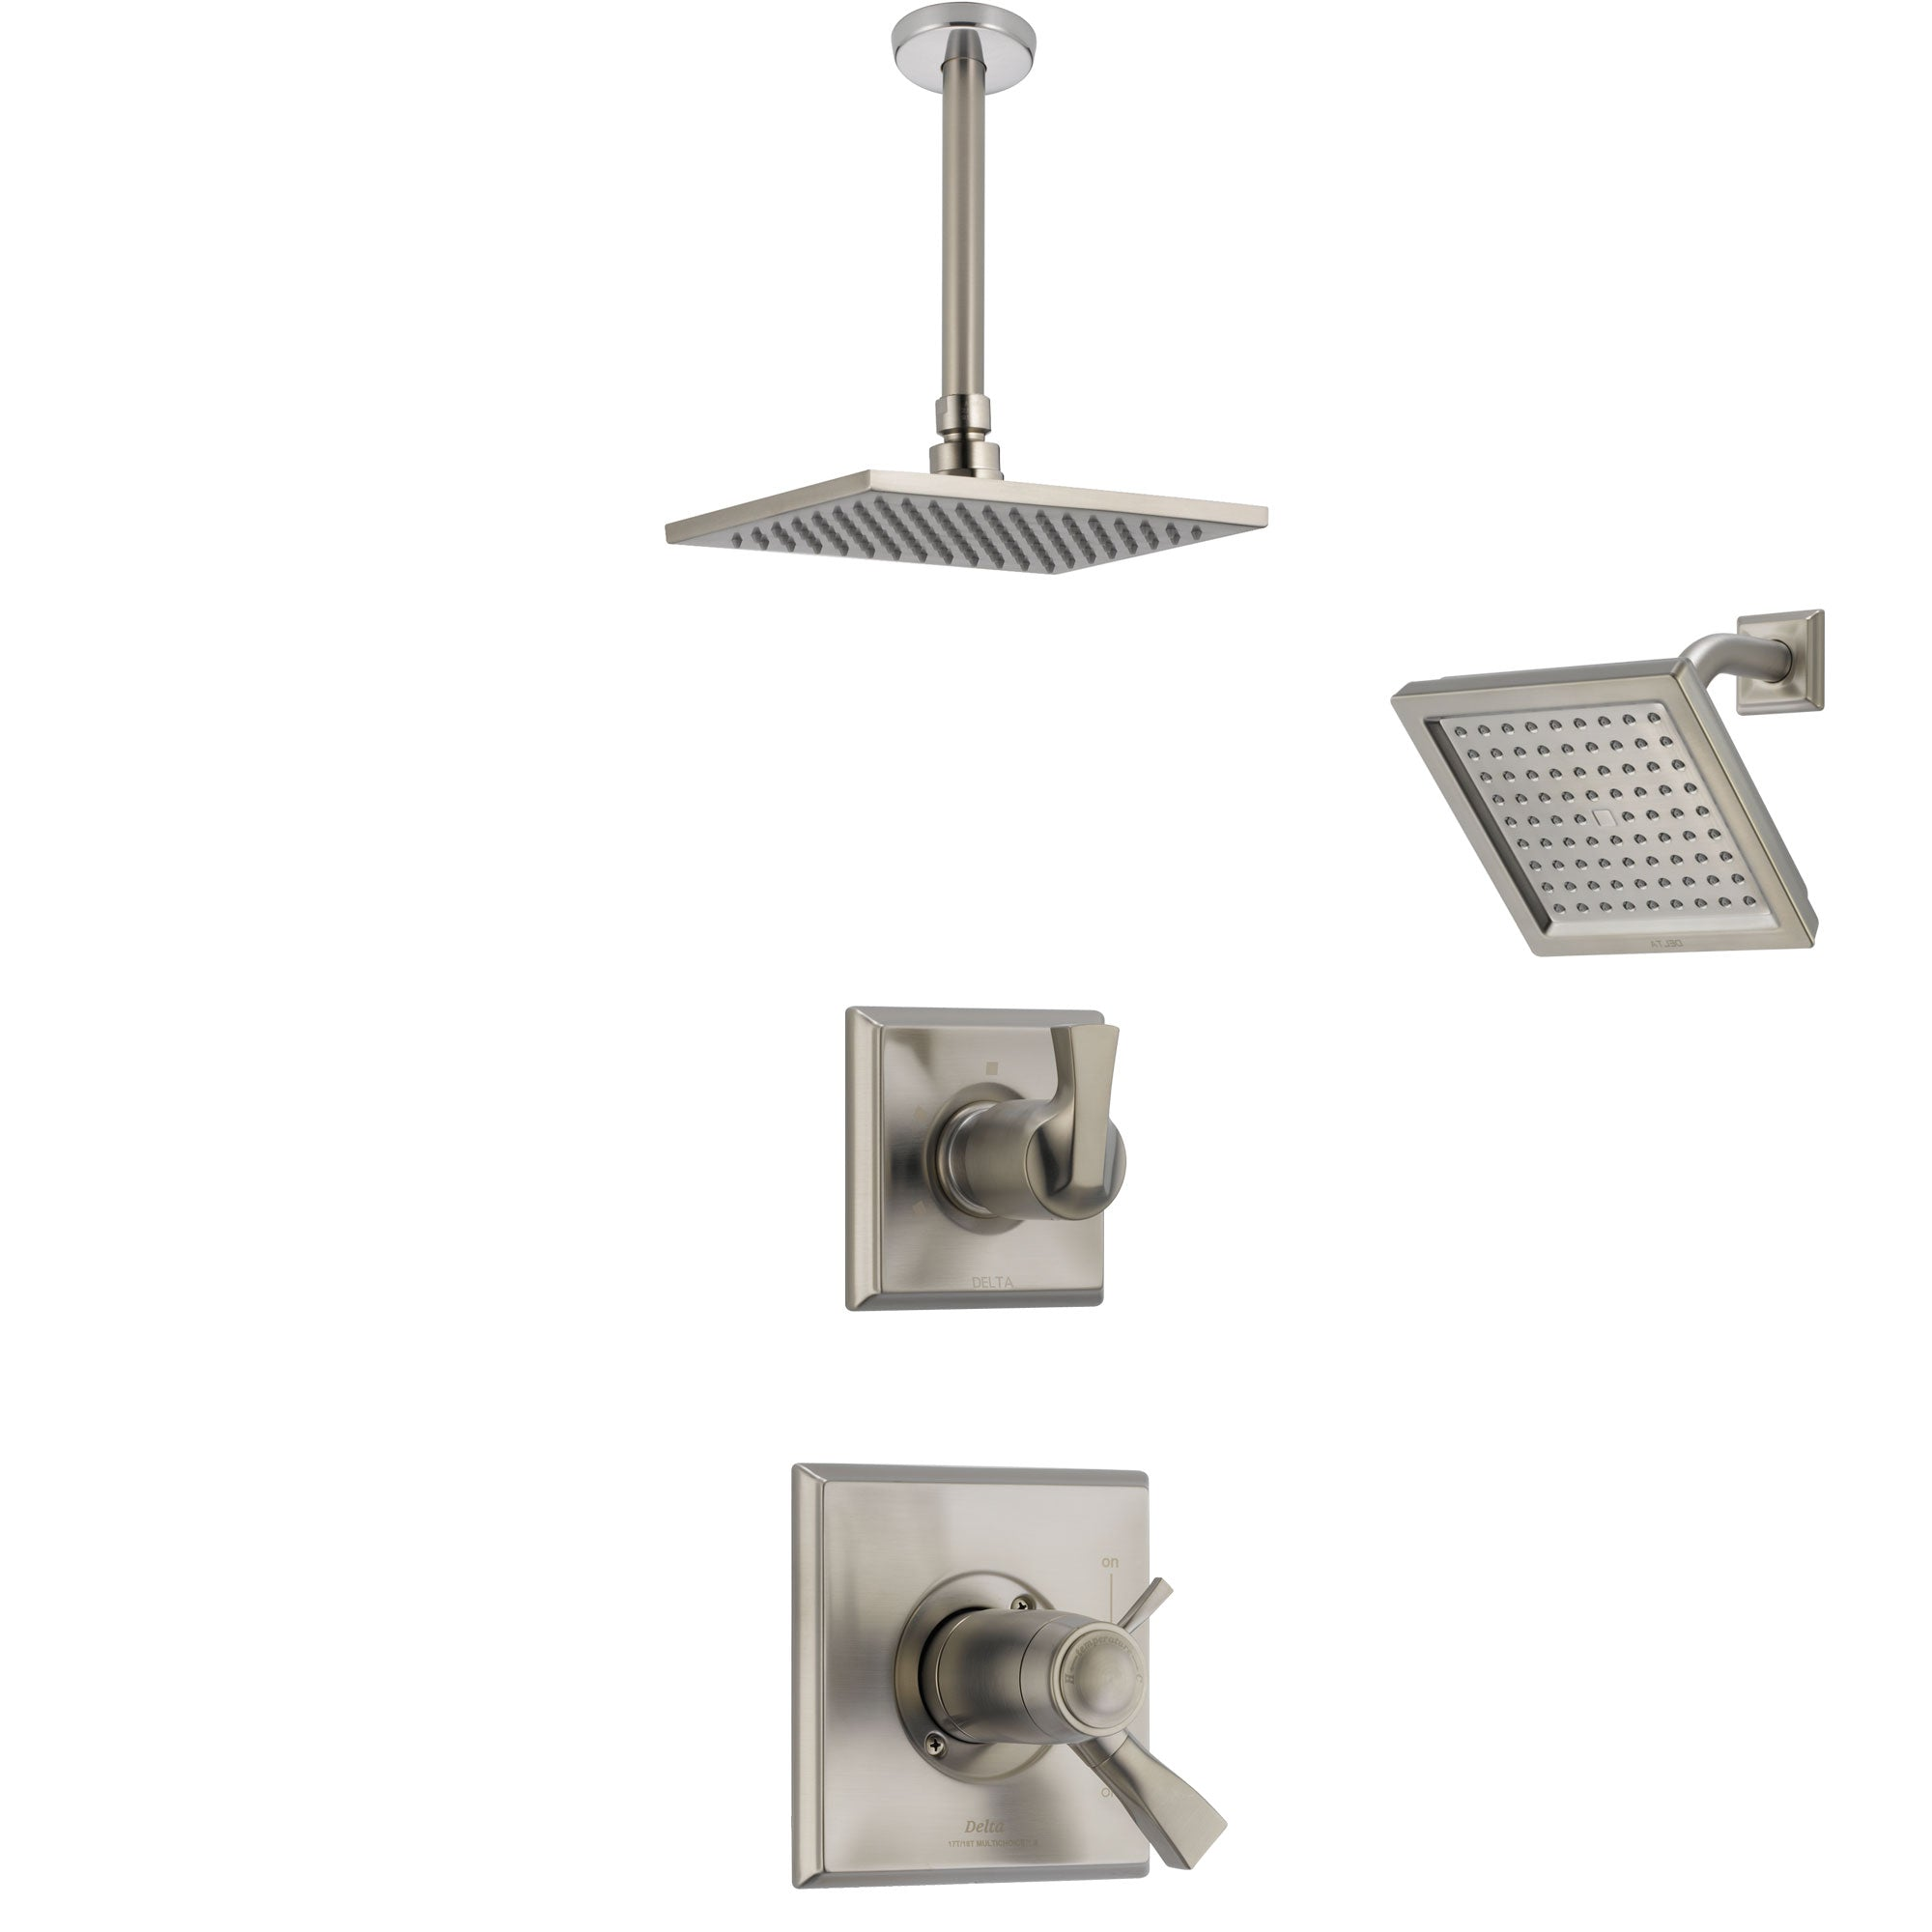 Delta Dryden Dual Thermostatic Control Handle Stainless Steel Finish Shower System, Diverter, Showerhead, and Ceiling Mount Showerhead SS17T2511SS5